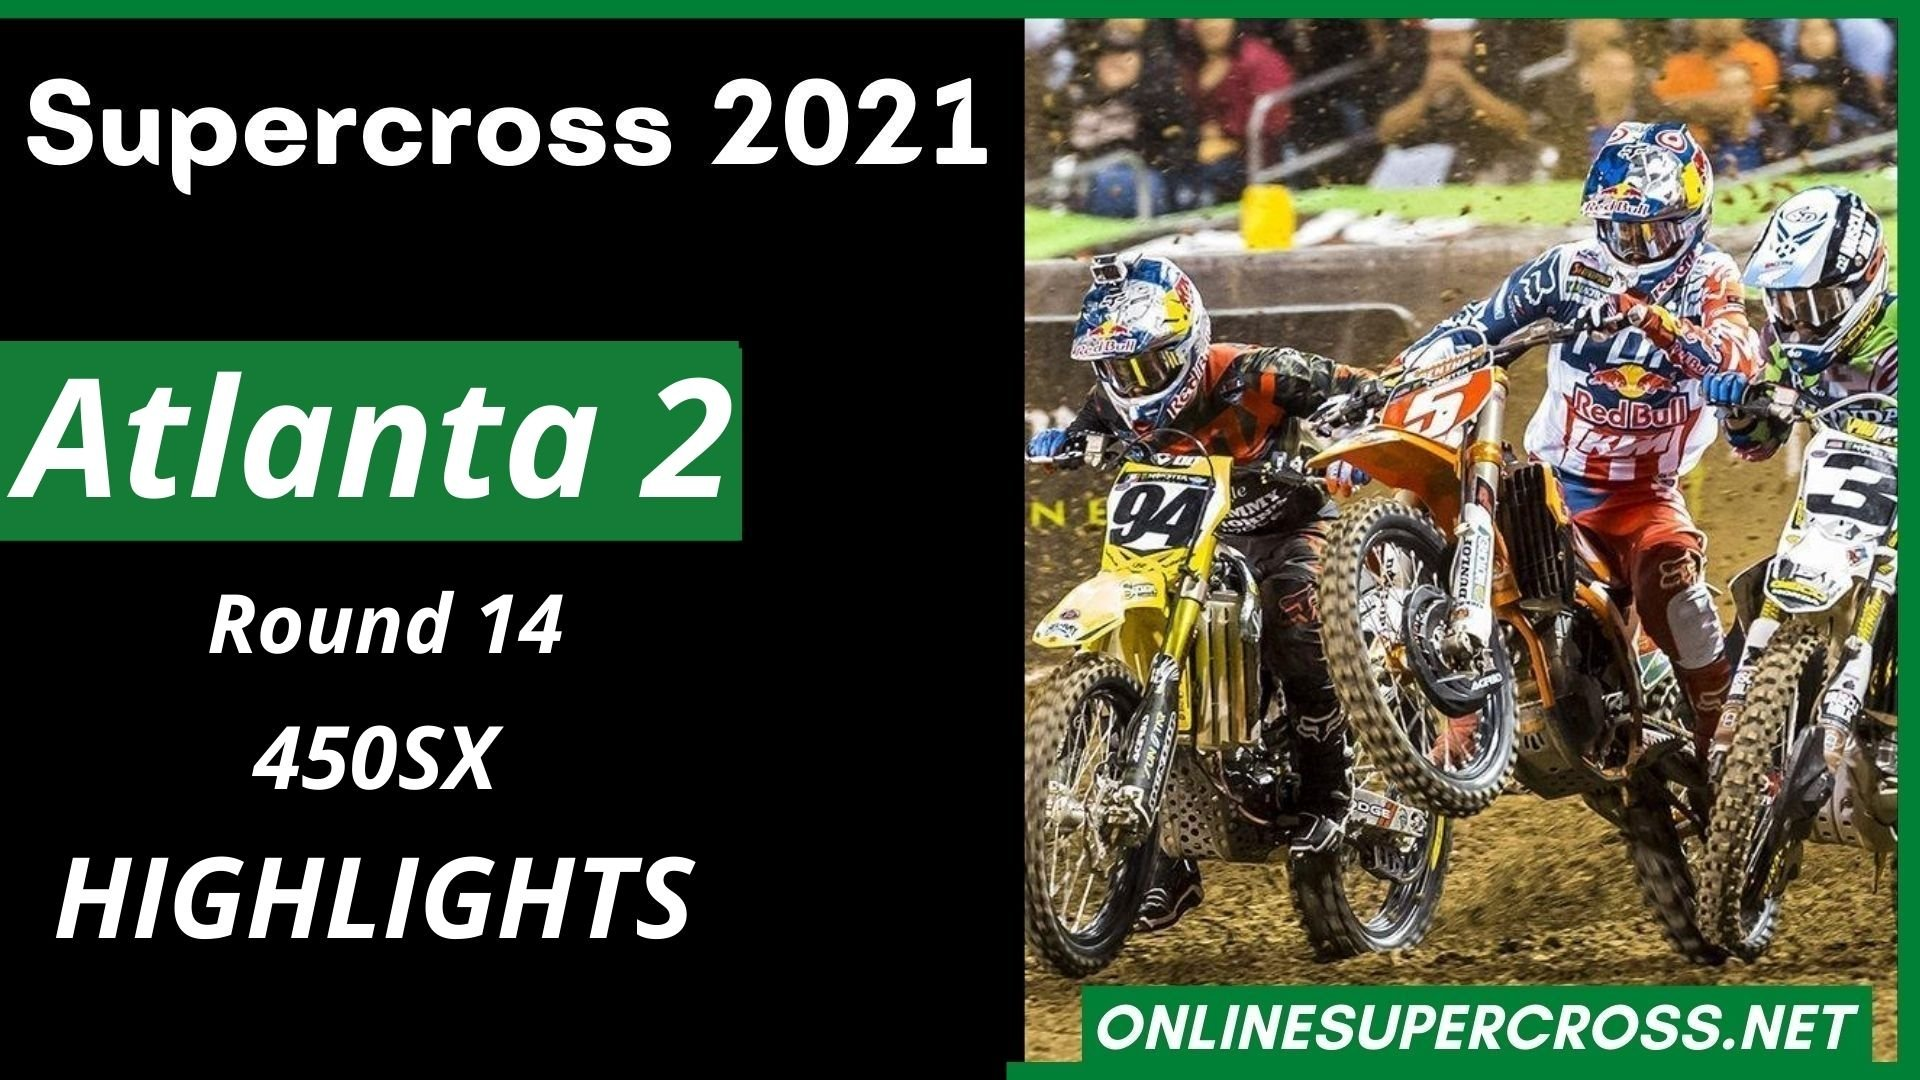 Atlanta 2 Round 14 Supercross 450SX Highlights 2021